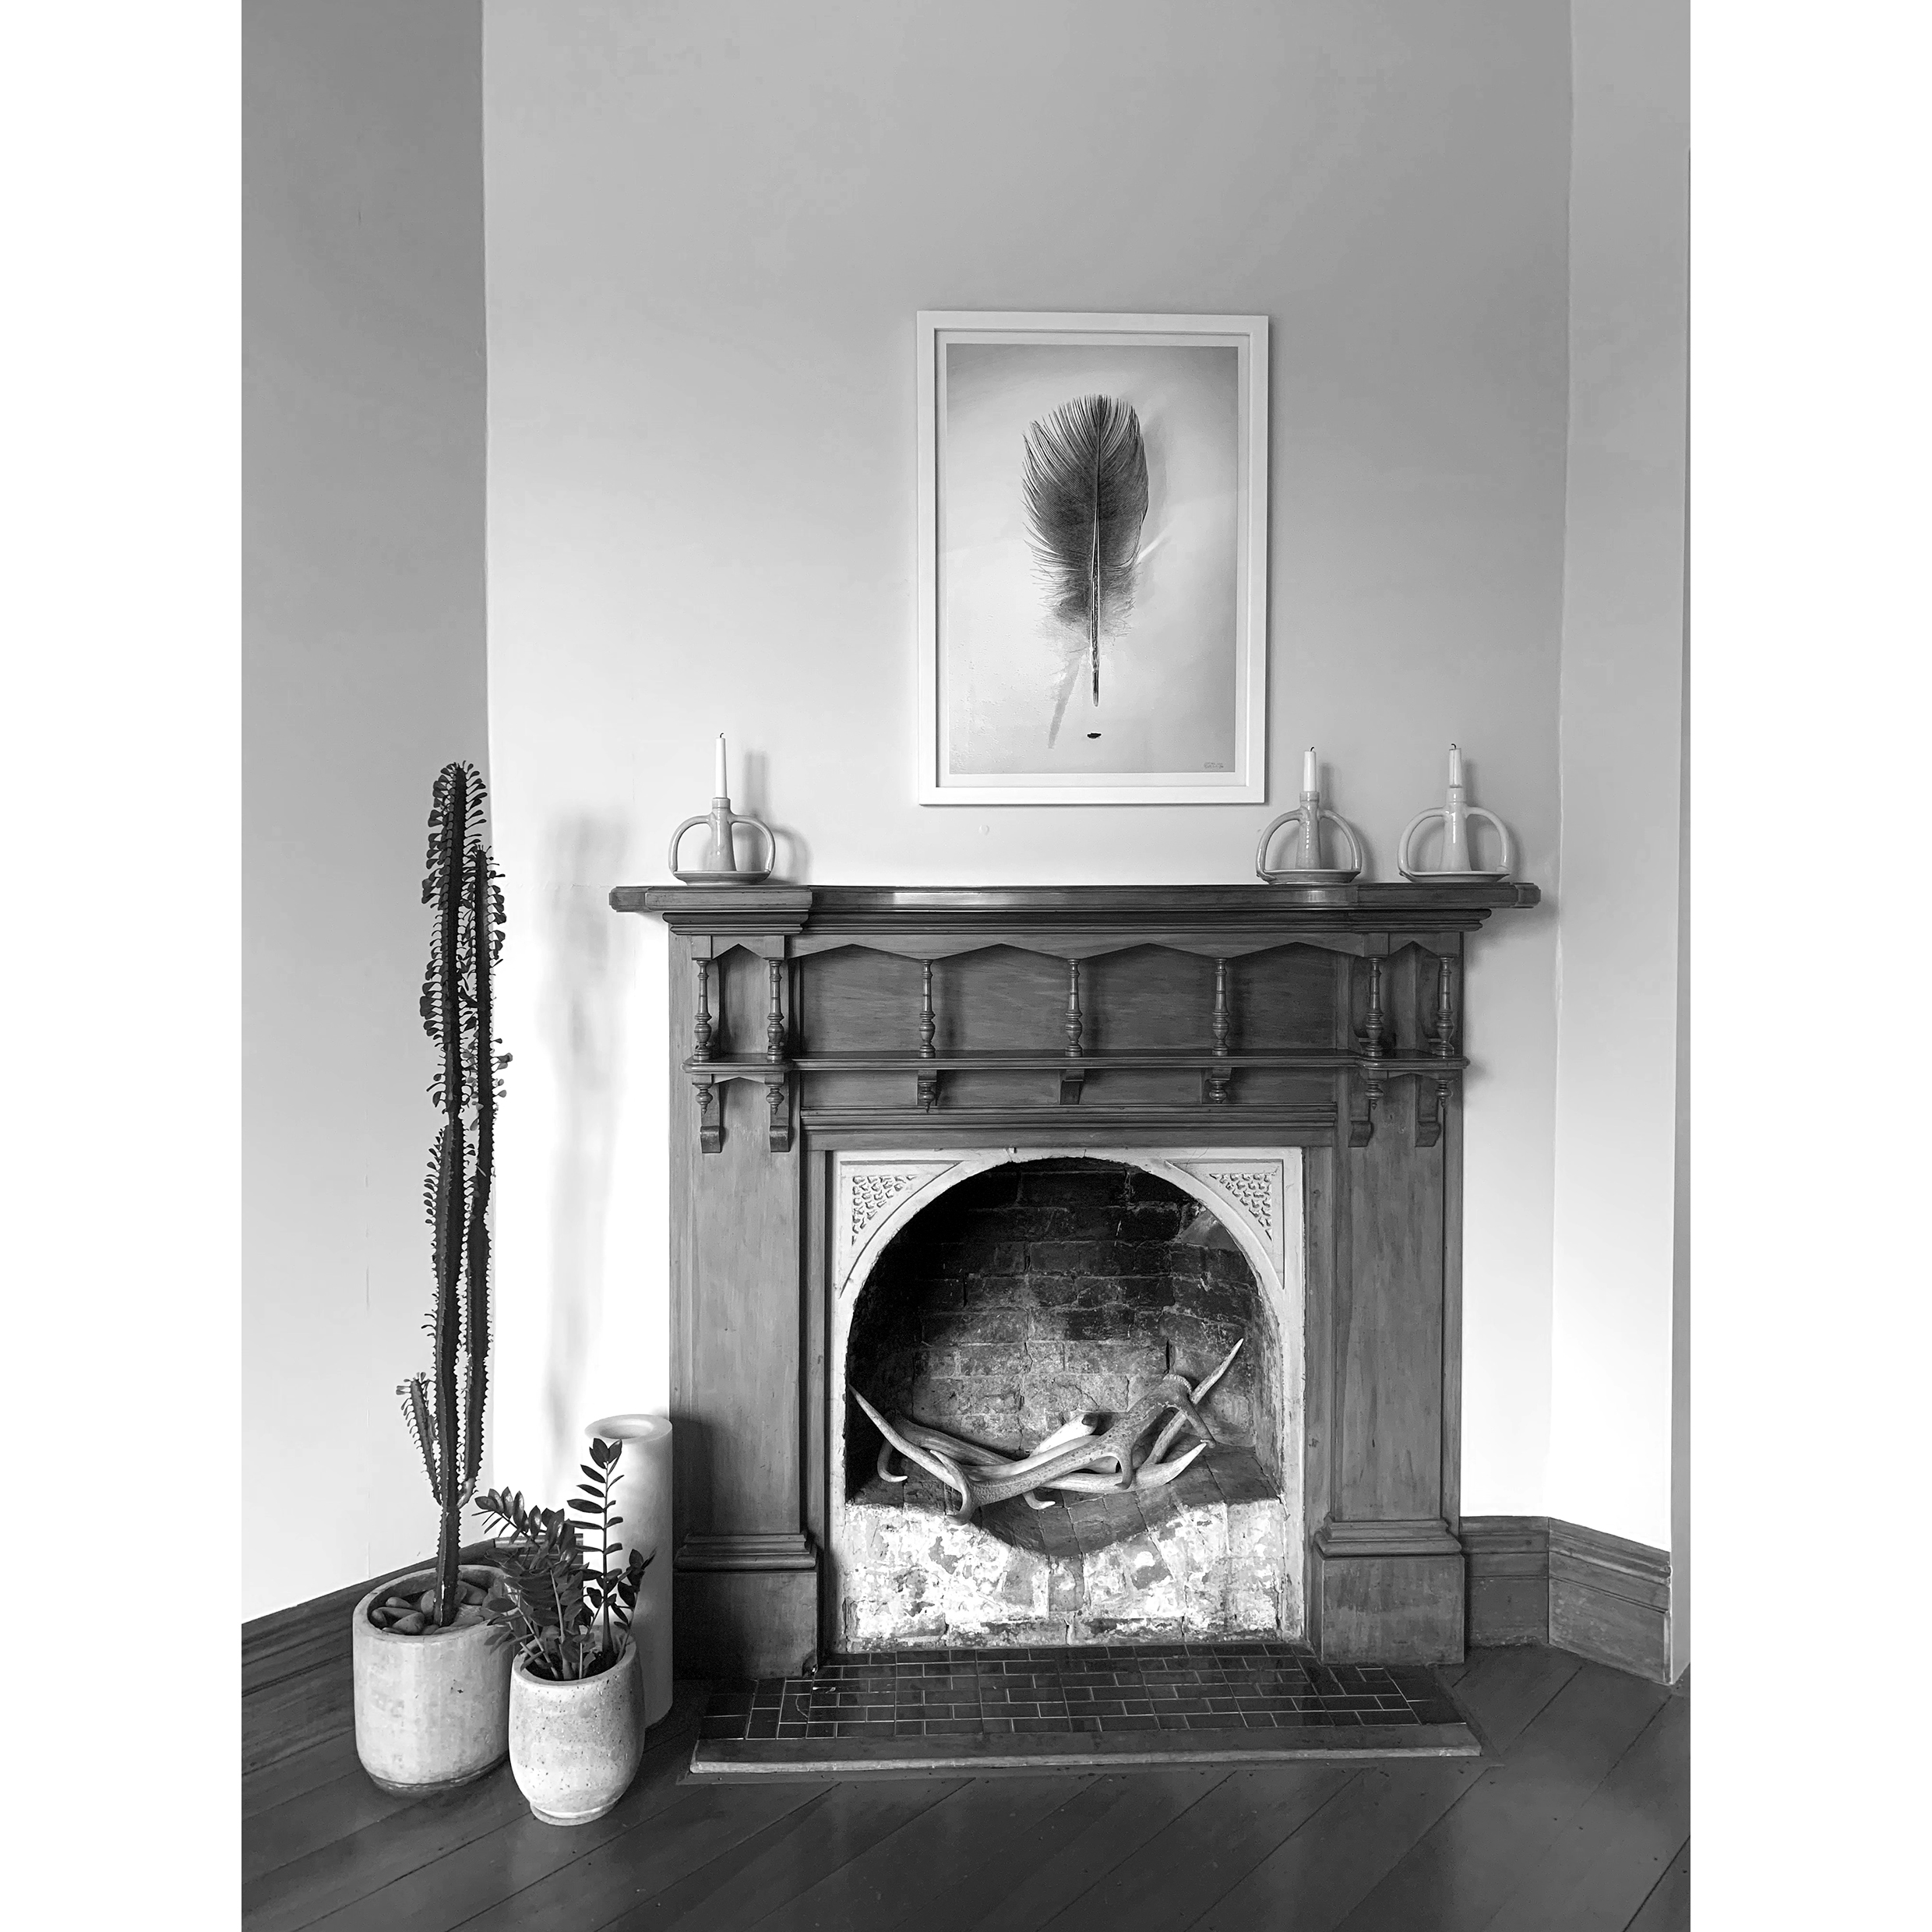 Feather, 2019  sitting gently above the mantle in the lounge.